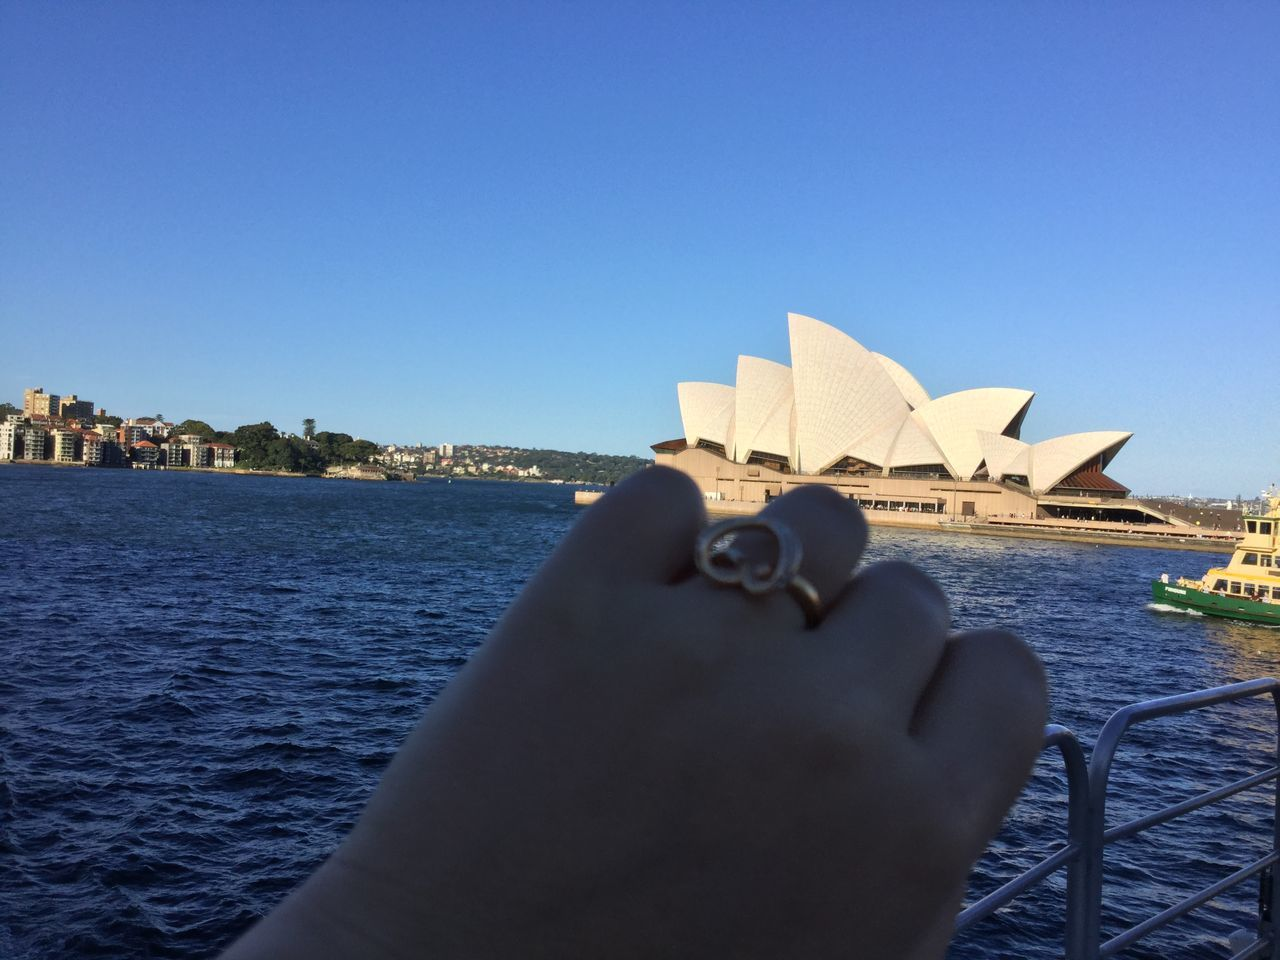 My Year My View Operahouse Sydney, Australia MYLOVESOFMYLIFE Happiness Rings 💍 Swarovski Ring Heart ❤ Aussie Mydreams